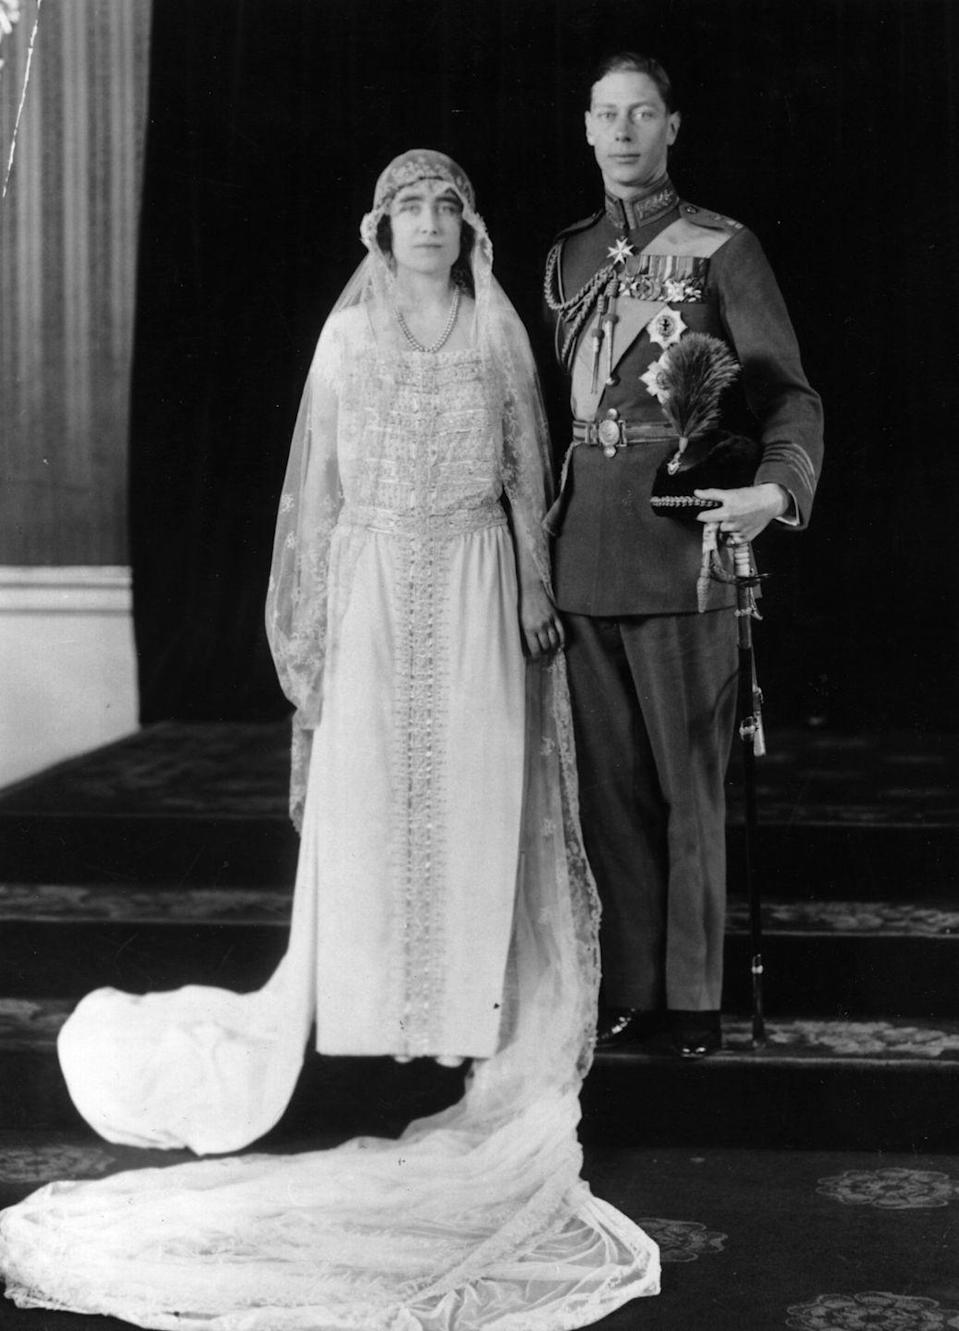 "<p>Lady Elizabeth Bowes-Lyon was proposed to by the Duke of York, later King George VI, in 1923 and they <a href=""https://www.royal.uk/life-and-work-queen-elizabeth-queen-mother"" rel=""nofollow noopener"" target=""_blank"" data-ylk=""slk:married shortly after"" class=""link rapid-noclick-resp"">married shortly after</a> at Westminster Abbey. </p>"